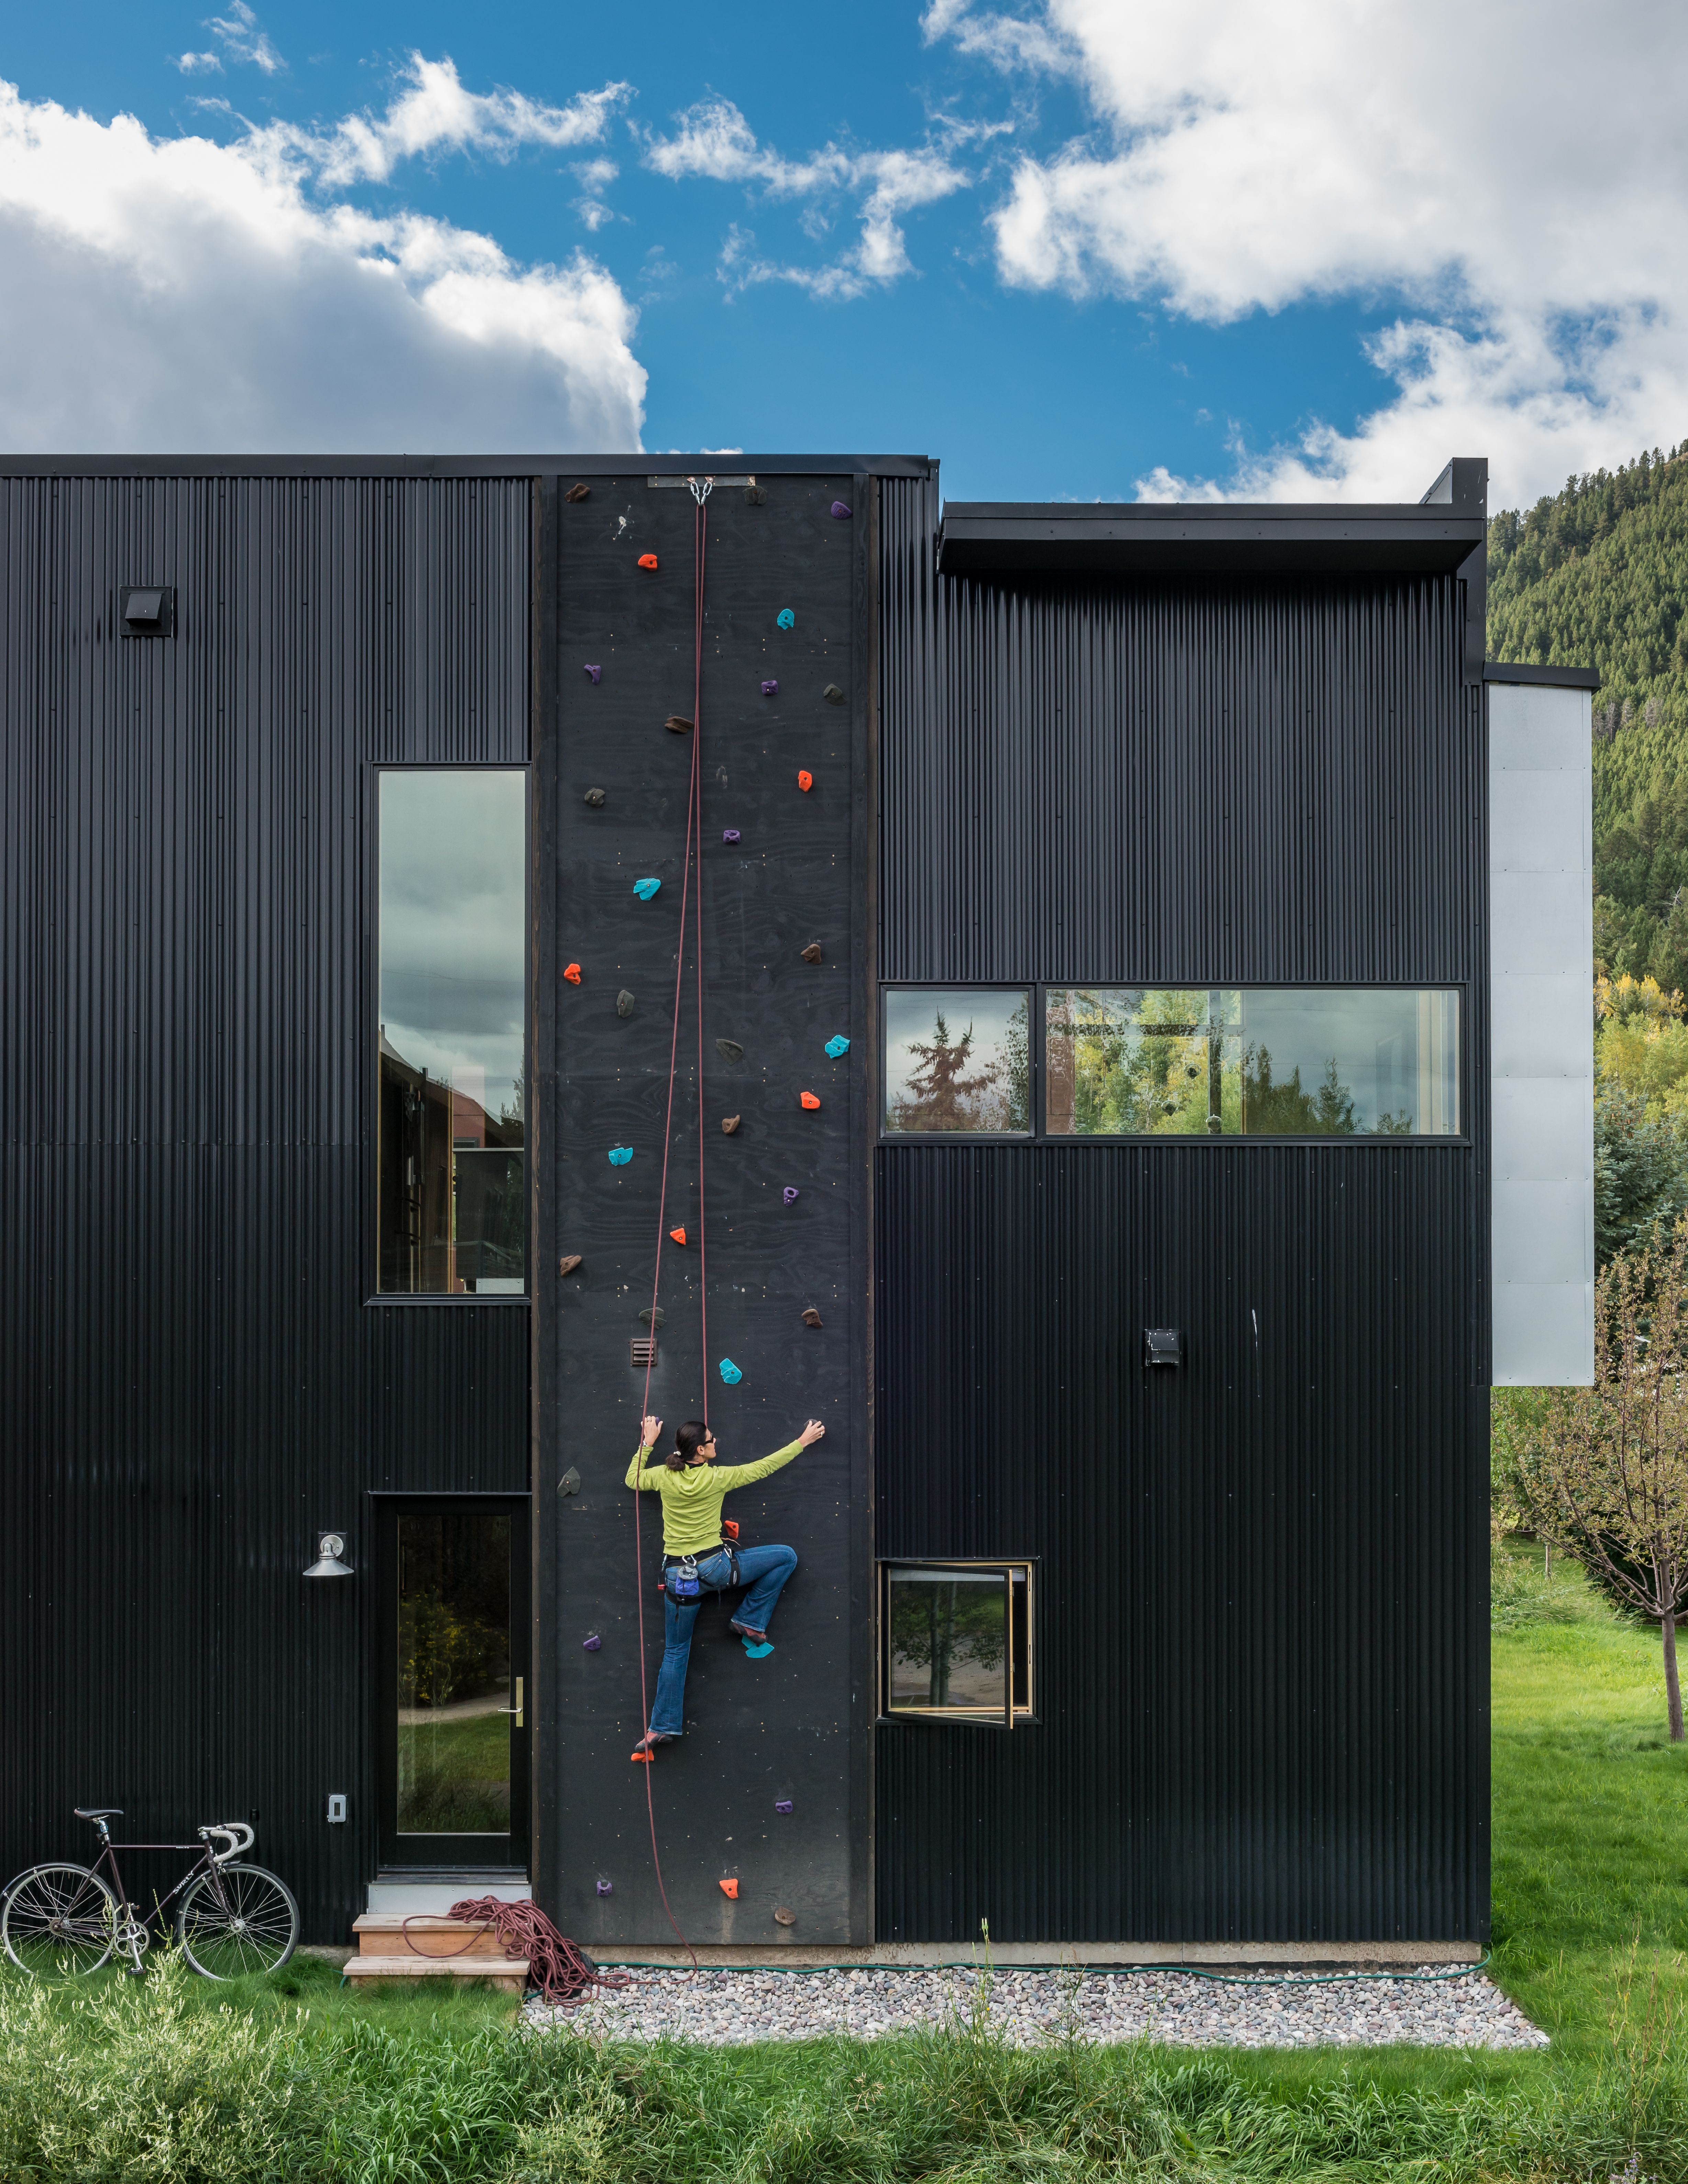 Dotted with colorful footholds a climbing wall covers one side of